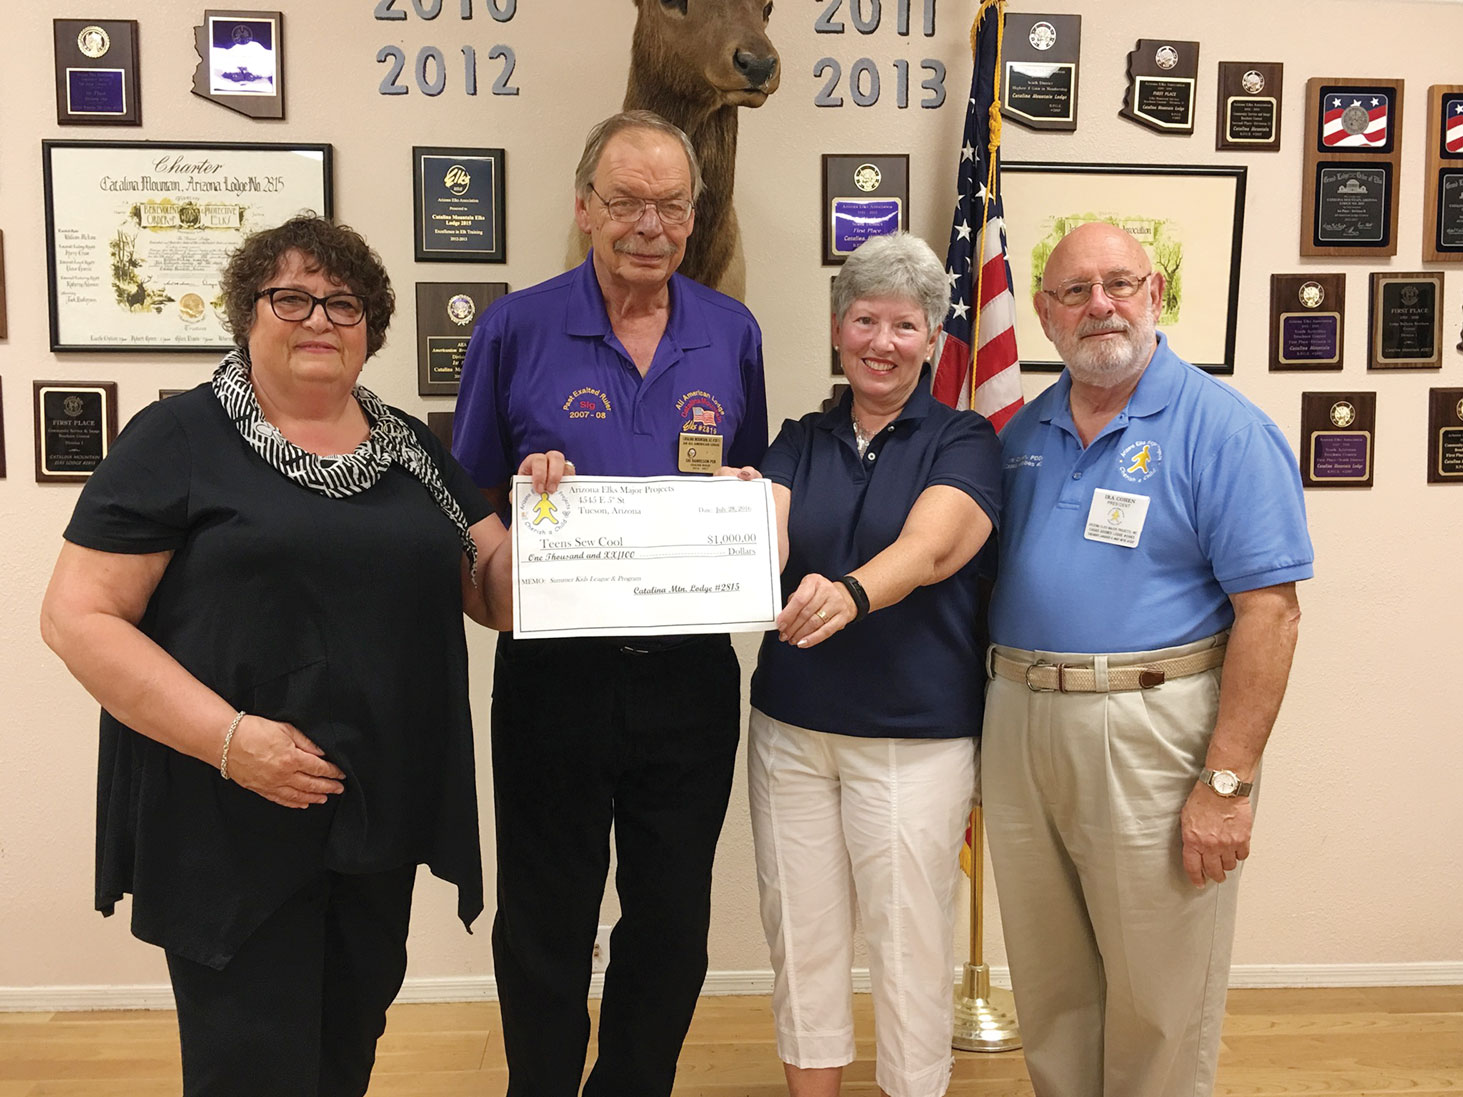 Left to right: Linda Shannon-Hills, Sig Danielson, Exalted Ruler Elks, Kathleen Morgan Squires and Ira Cohen, Arizona Elks Major Projects